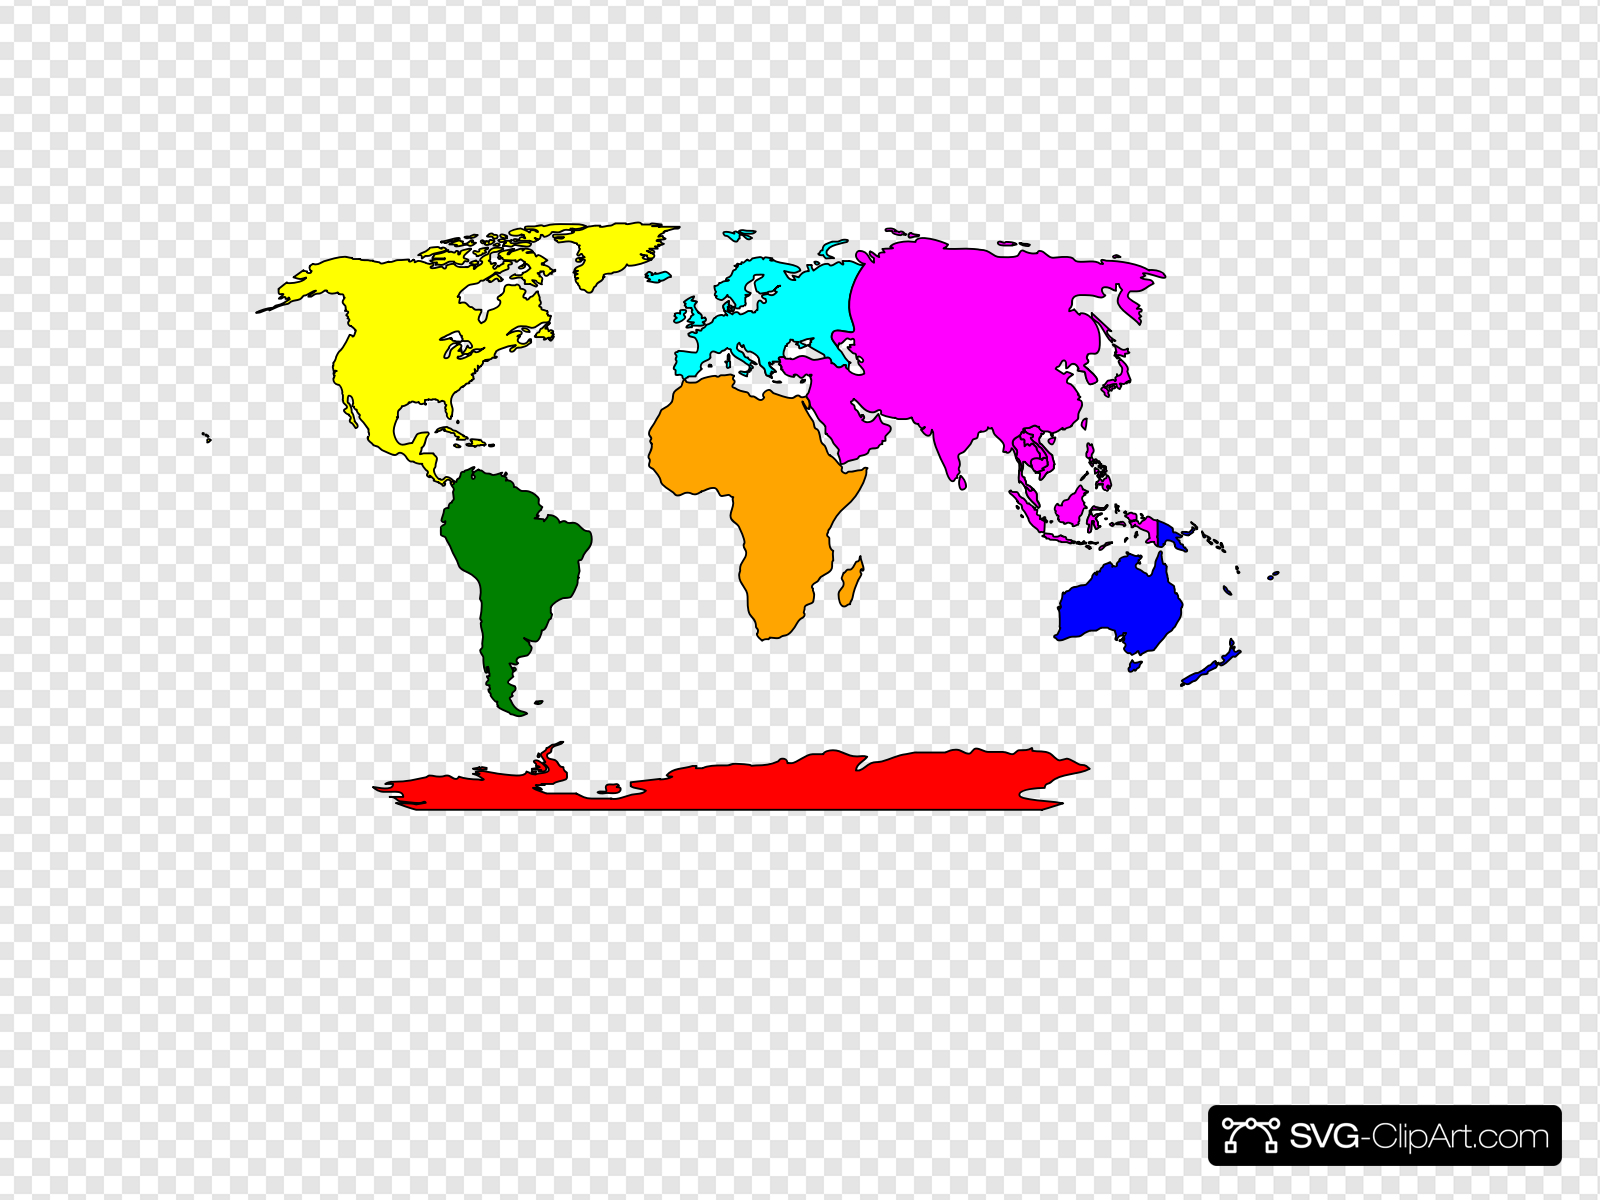 Simple Continents Map With Antarctica Clip art, Icon and SVG.